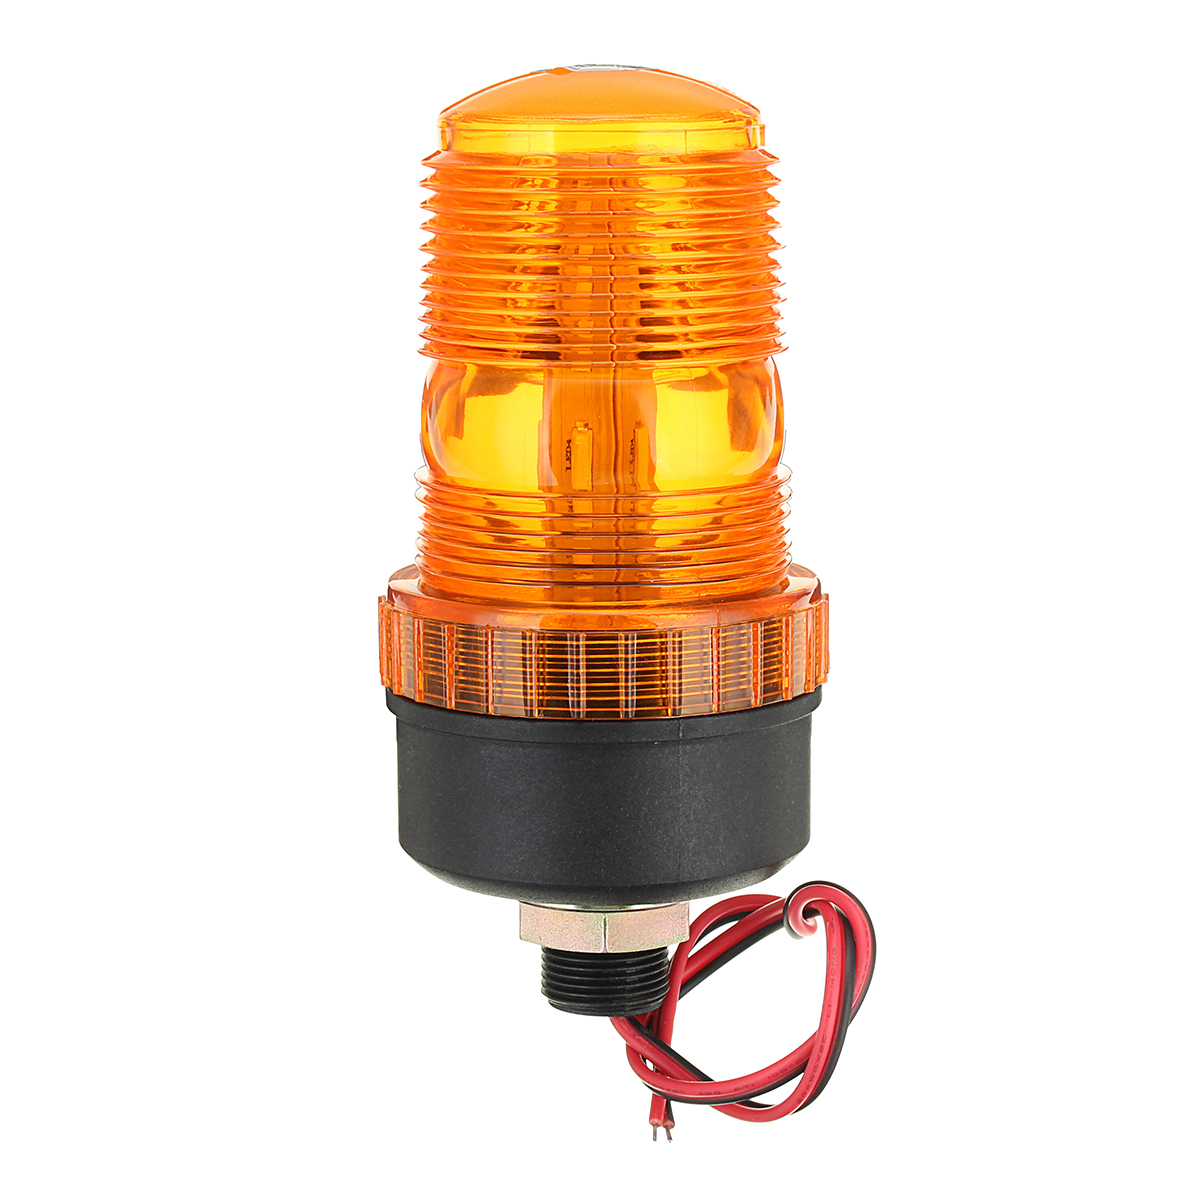 12V 24V LED Rotating Flashing Amber Beacon Flexible Strobe Tractor Warning Light Traffic Light Roadway Safety